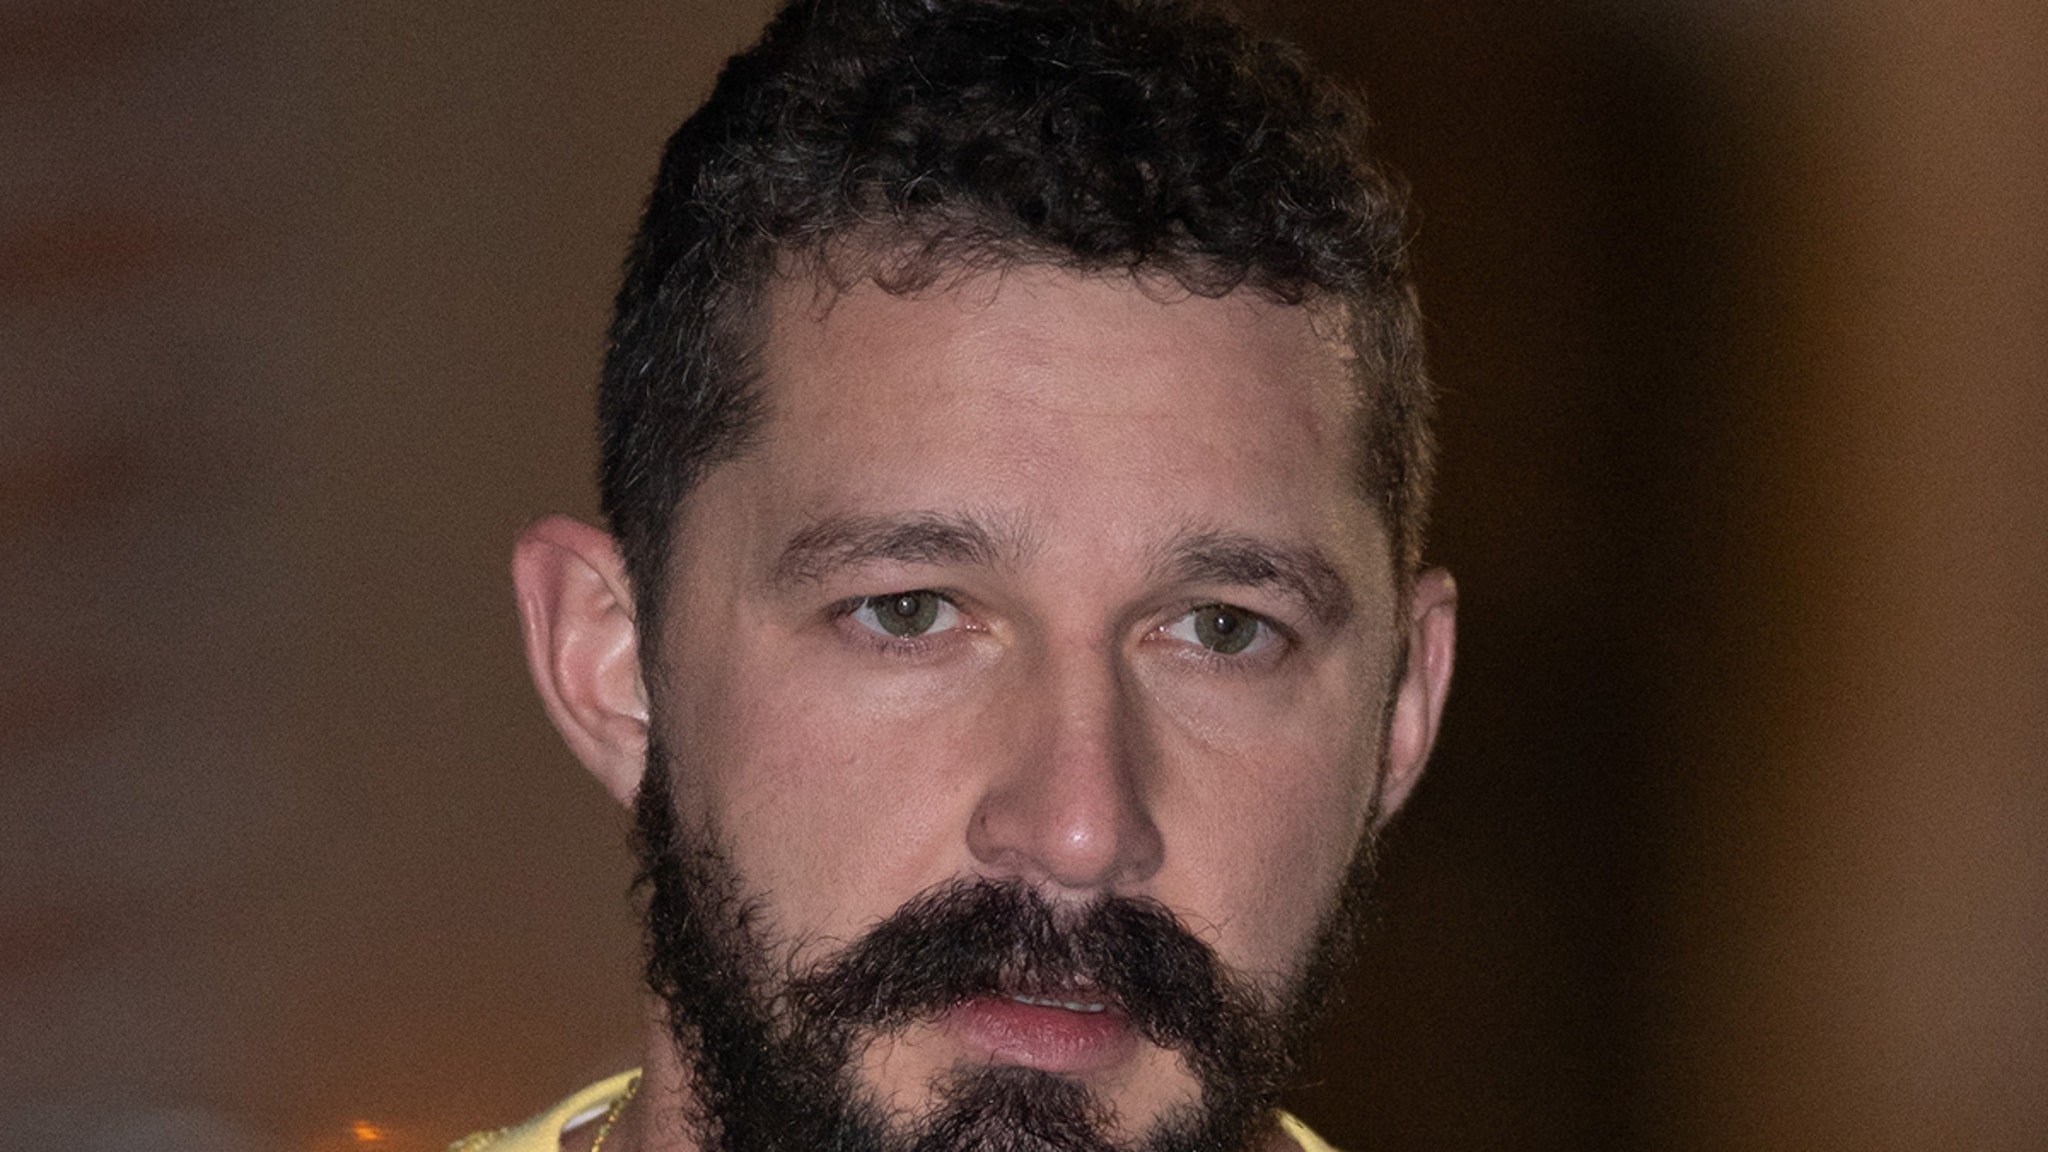 Shia LaBeouf Charged with Battery, Petty Theft Stemming from June Incident thumbnail